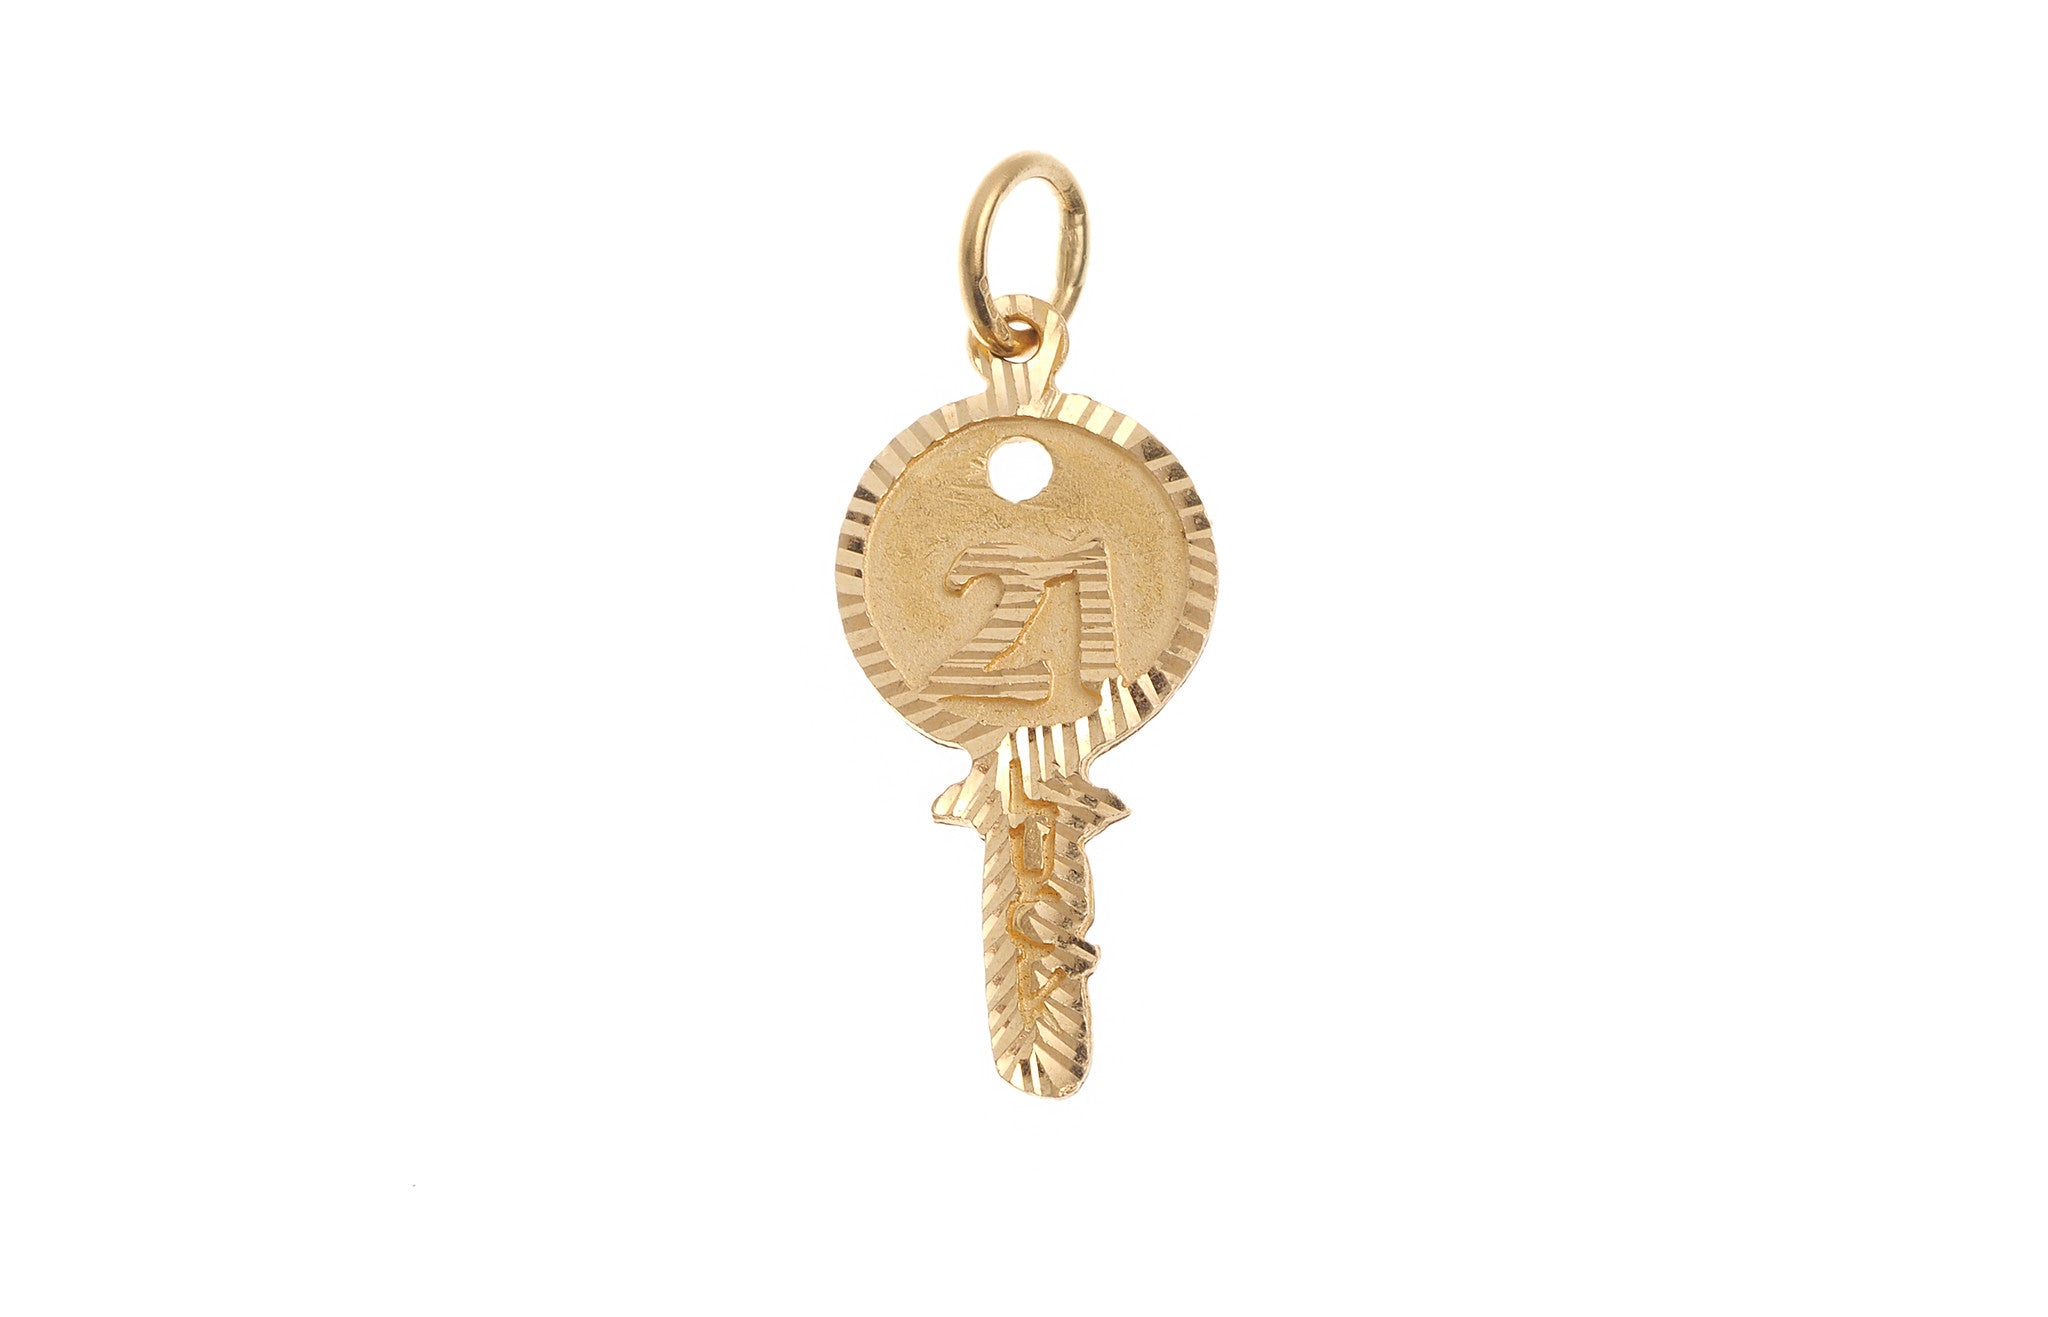 22ct Yellow Gold '21' Key Pendant (G5342), Minar Jewellers - 2